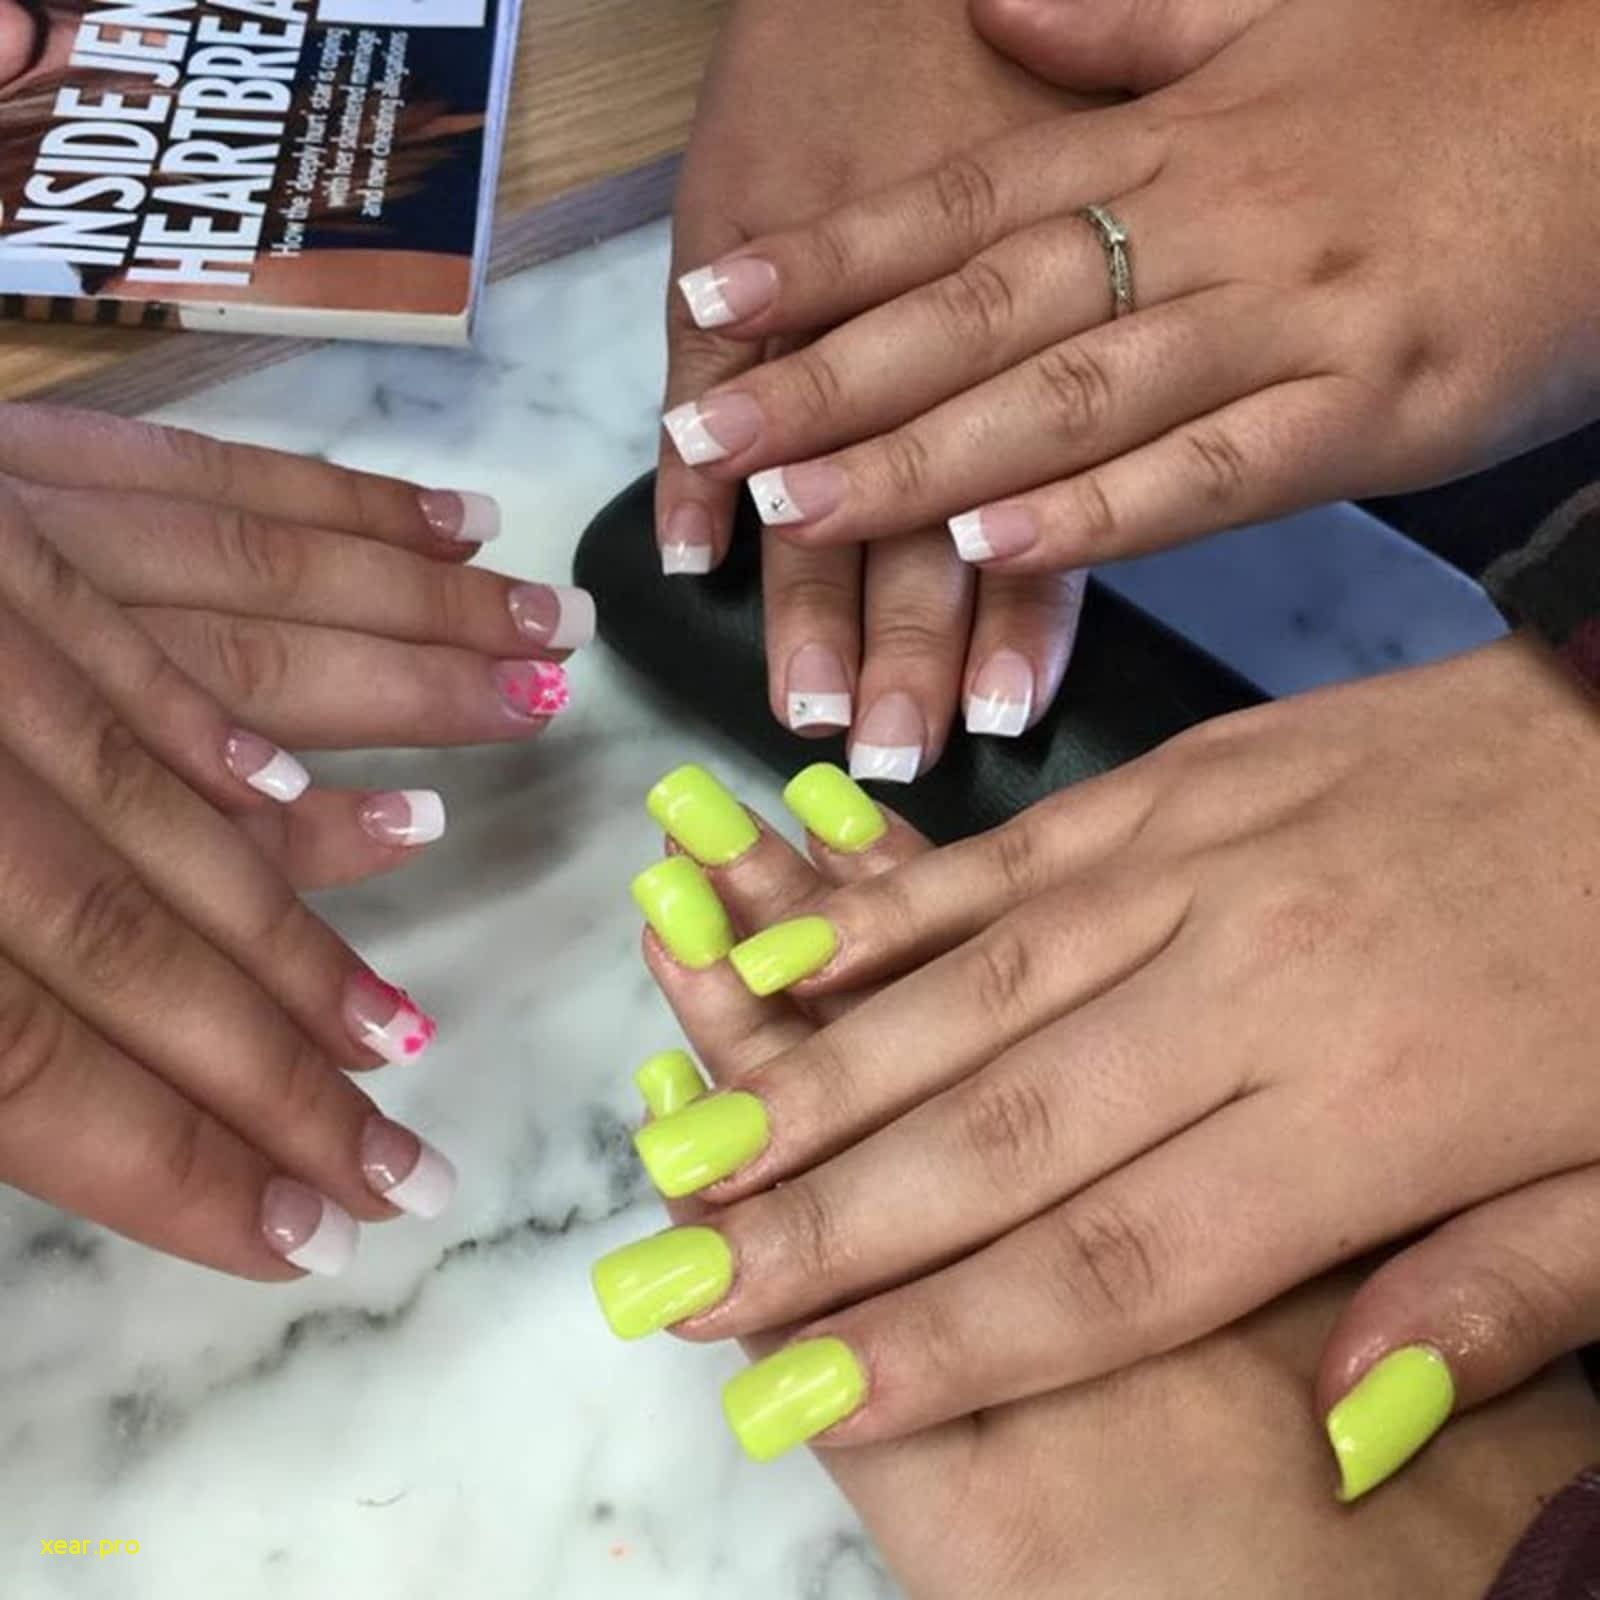 Best Of Nail Salon Near Me Junction With Images Remove Acrylic Nails Square Acrylic Nails Nail Art Studio